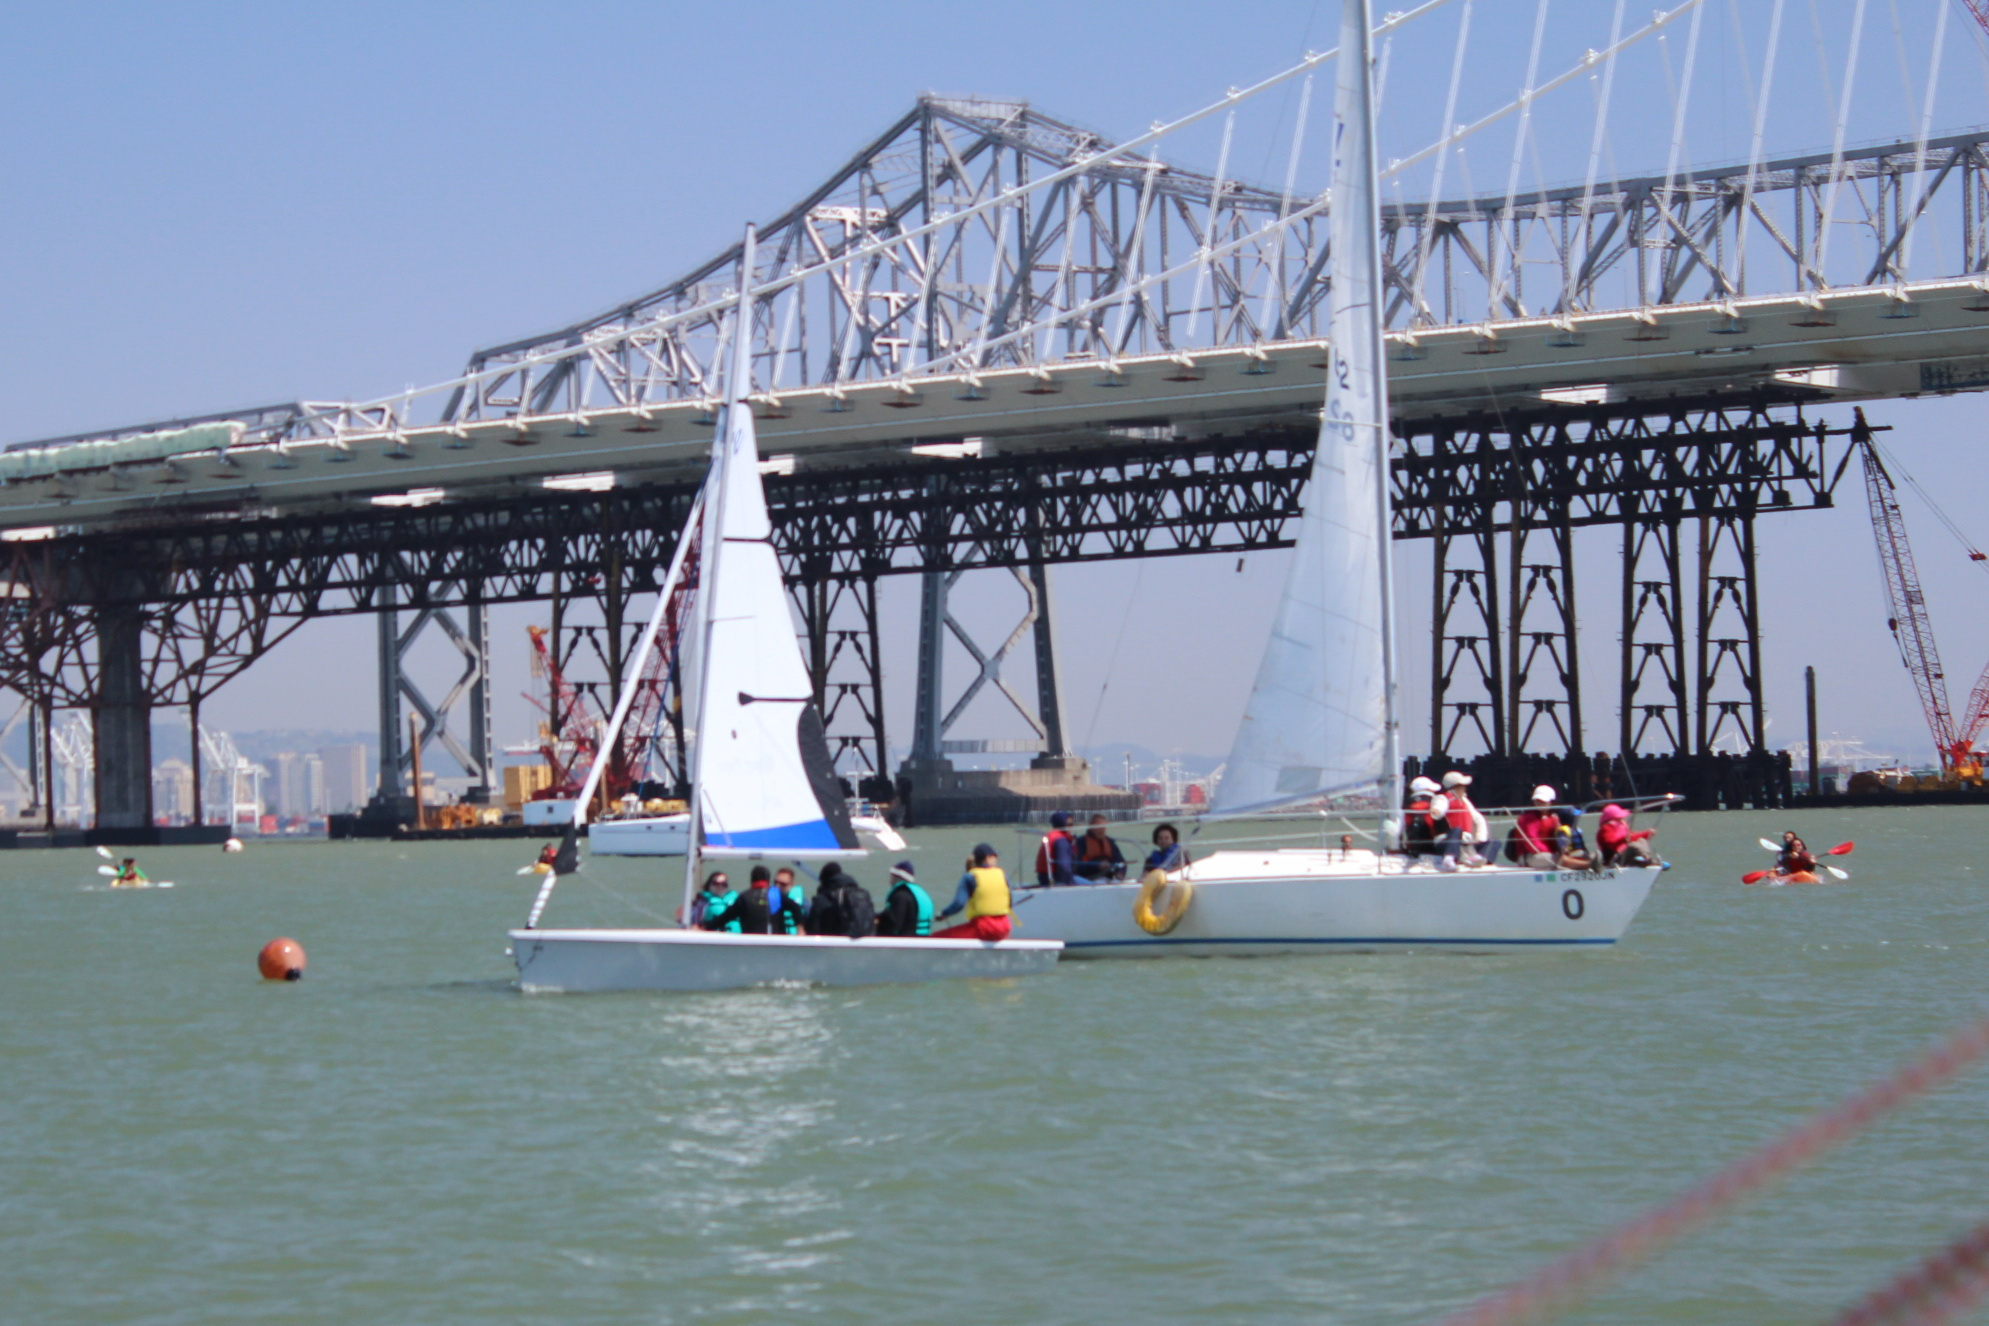 RS Venture and J24 framed by Bay Bridge